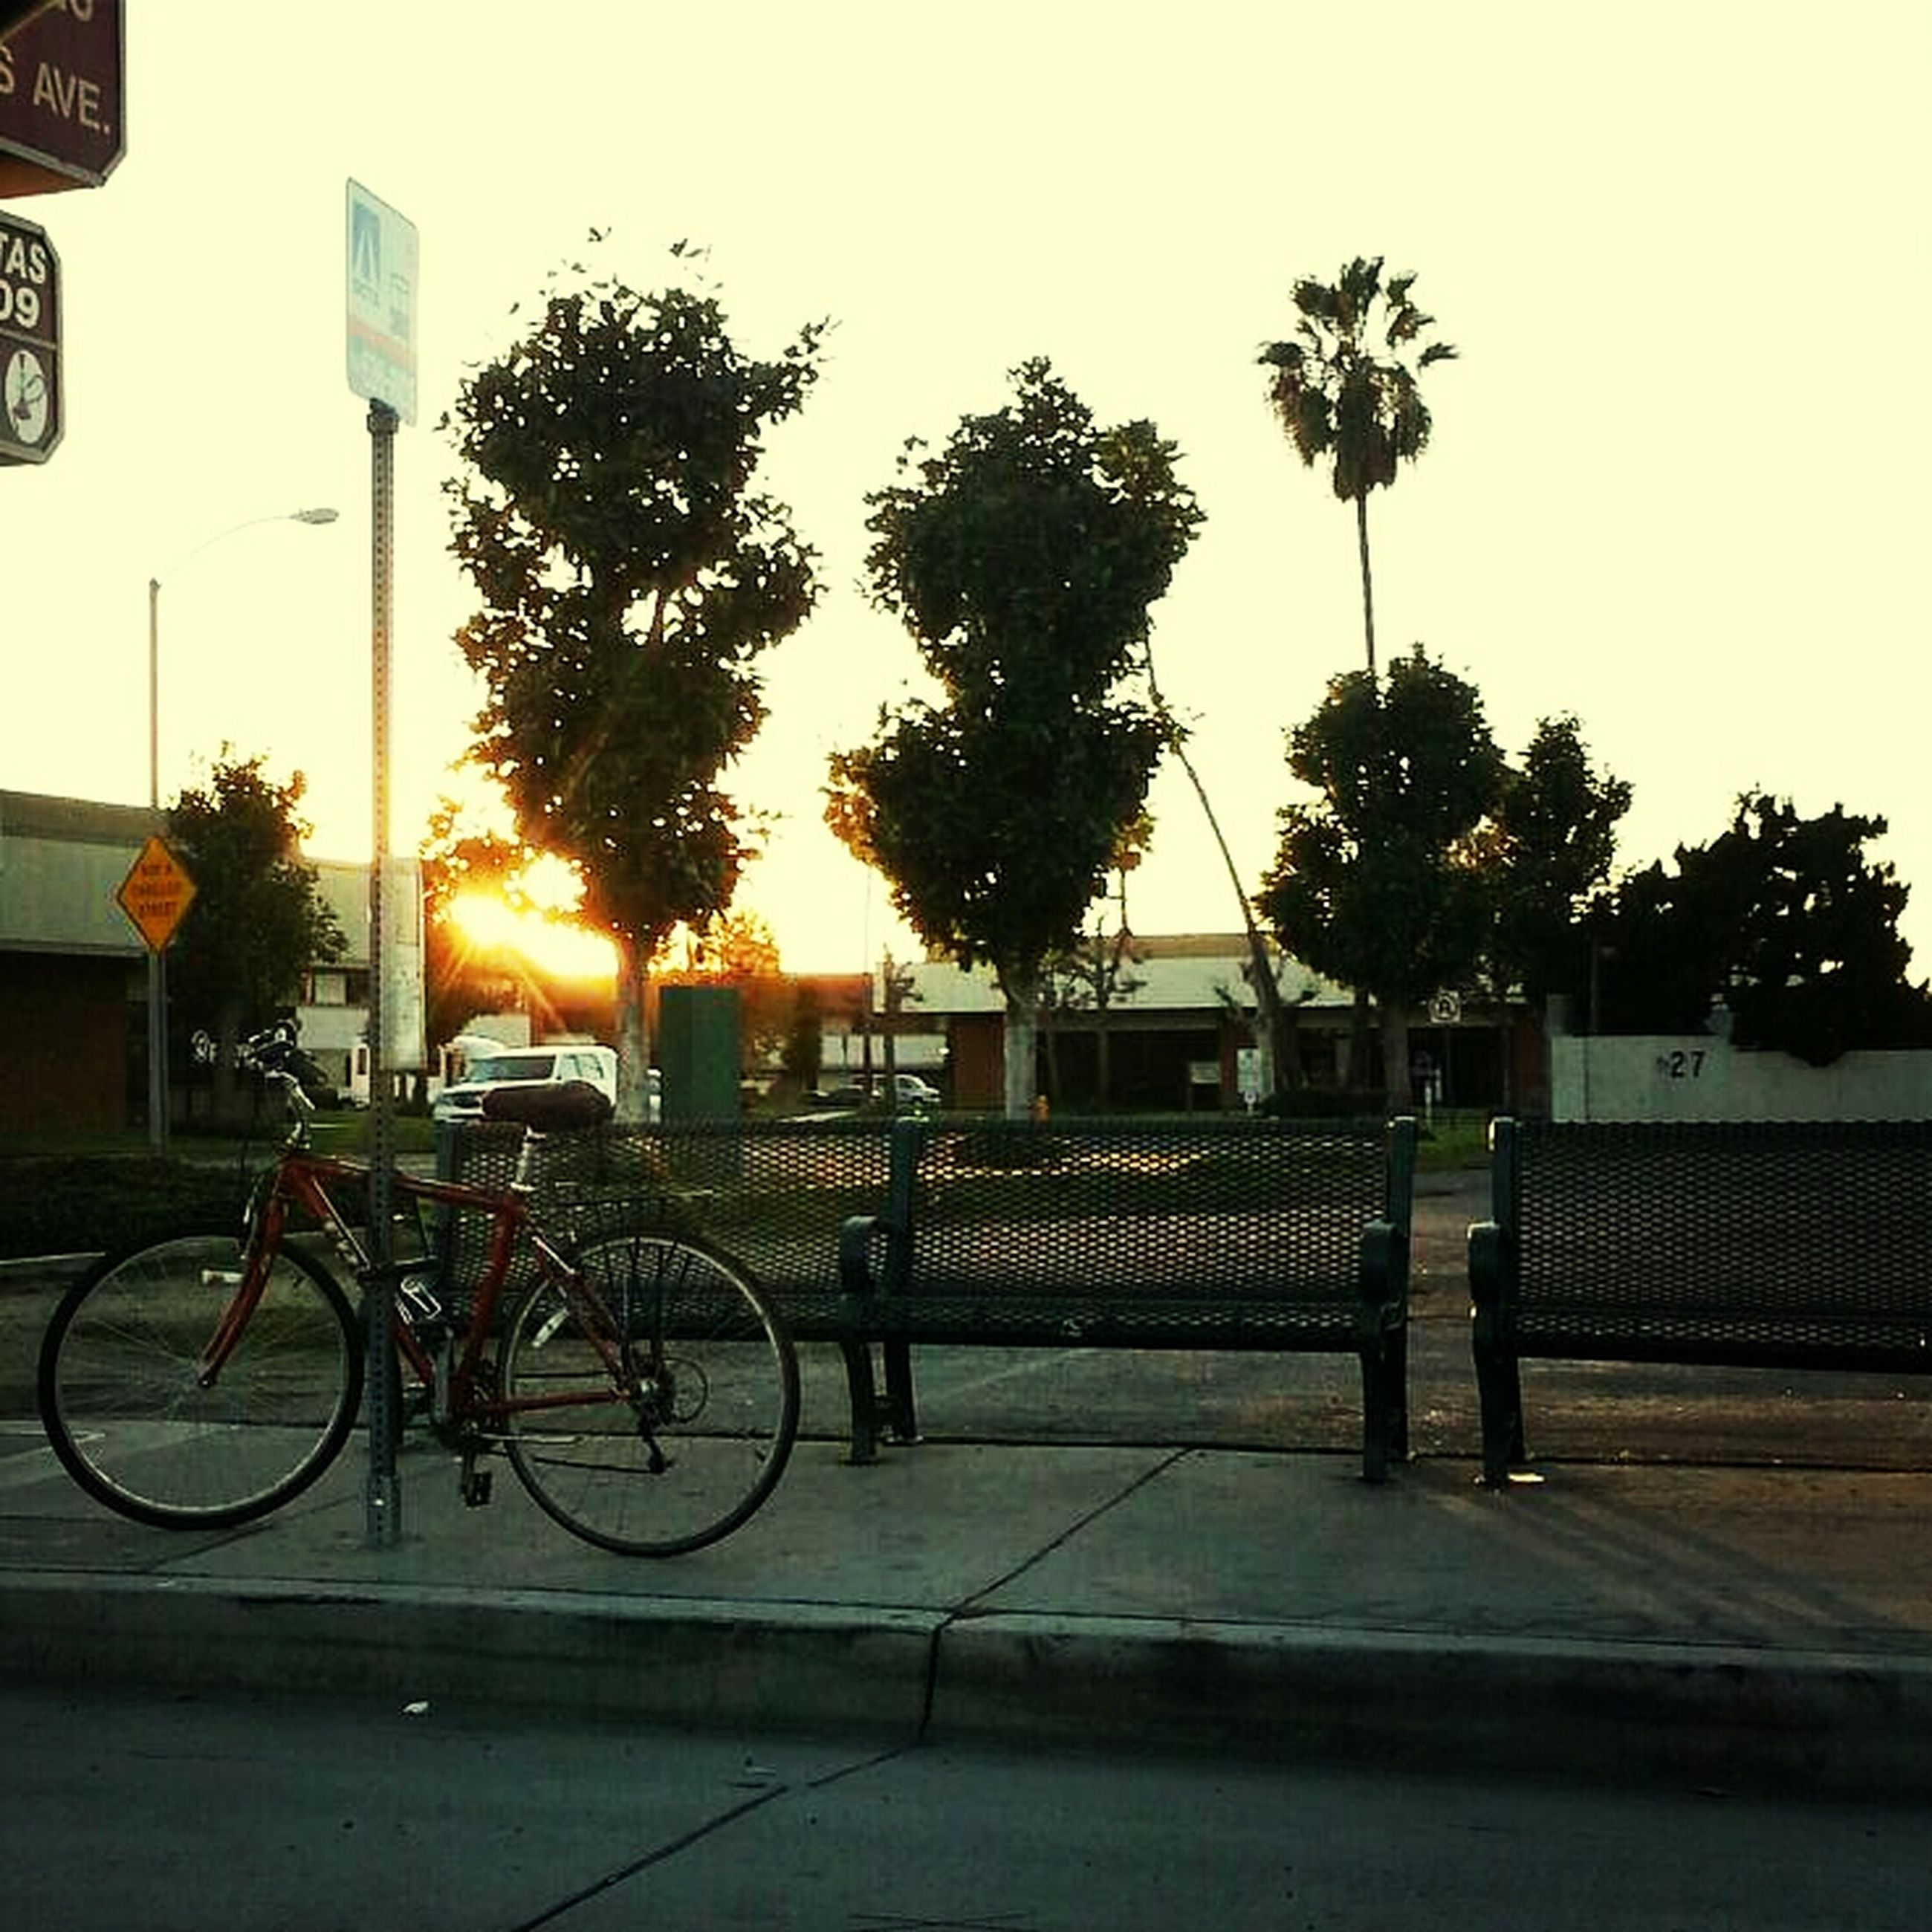 bicycle, transportation, land vehicle, mode of transport, parked, stationary, parking, tree, sunset, street, railing, road, car, sunlight, sidewalk, built structure, building exterior, parking lot, clear sky, silhouette